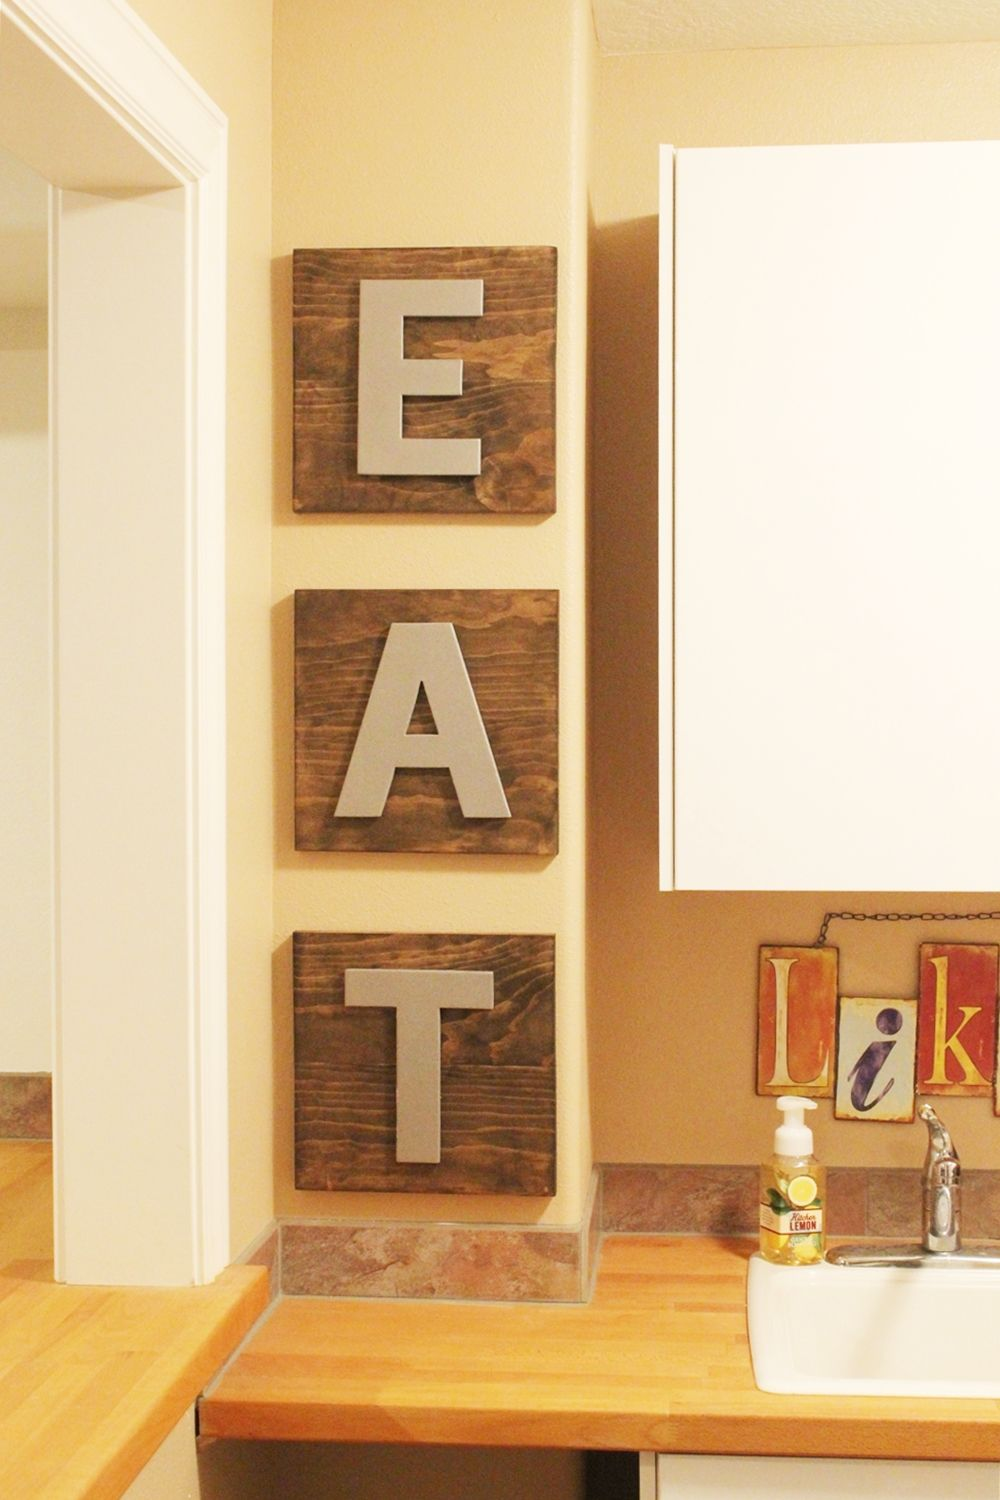 Eat Boards on kitchen